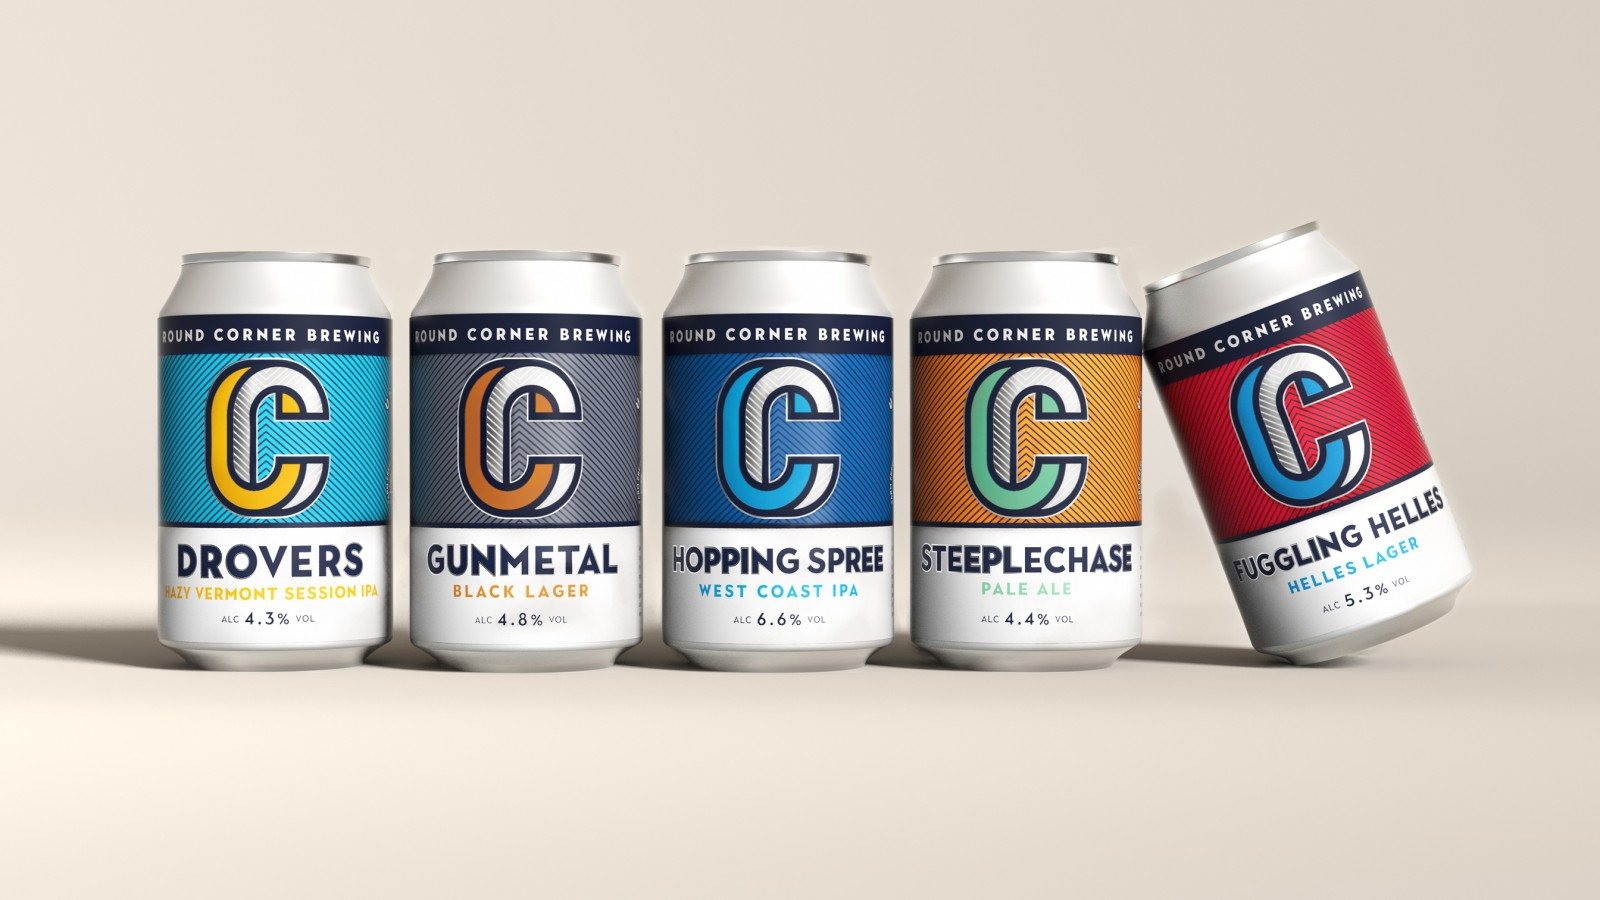 Quietly Studio Creates an Eye-Catching Packaging Design for Round Corner Brewing